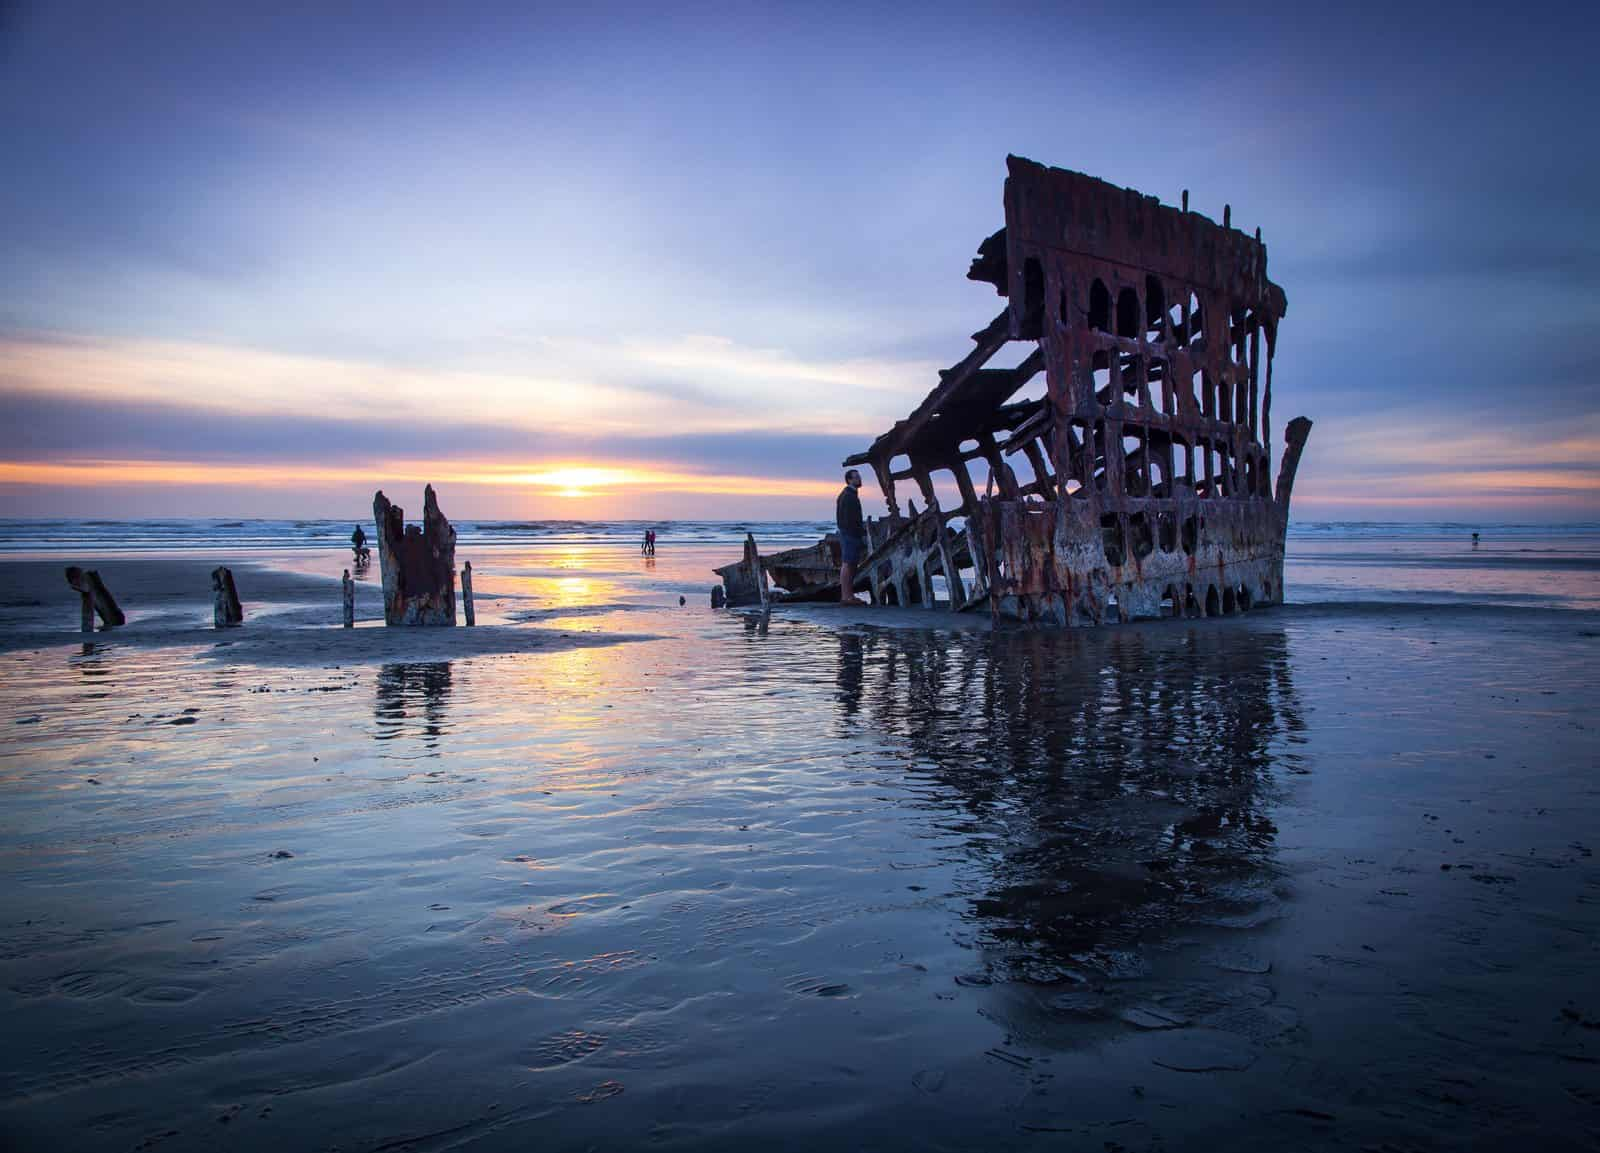 picture-of-peter-iredale-shipwreck-oregon-coast 5198x3744